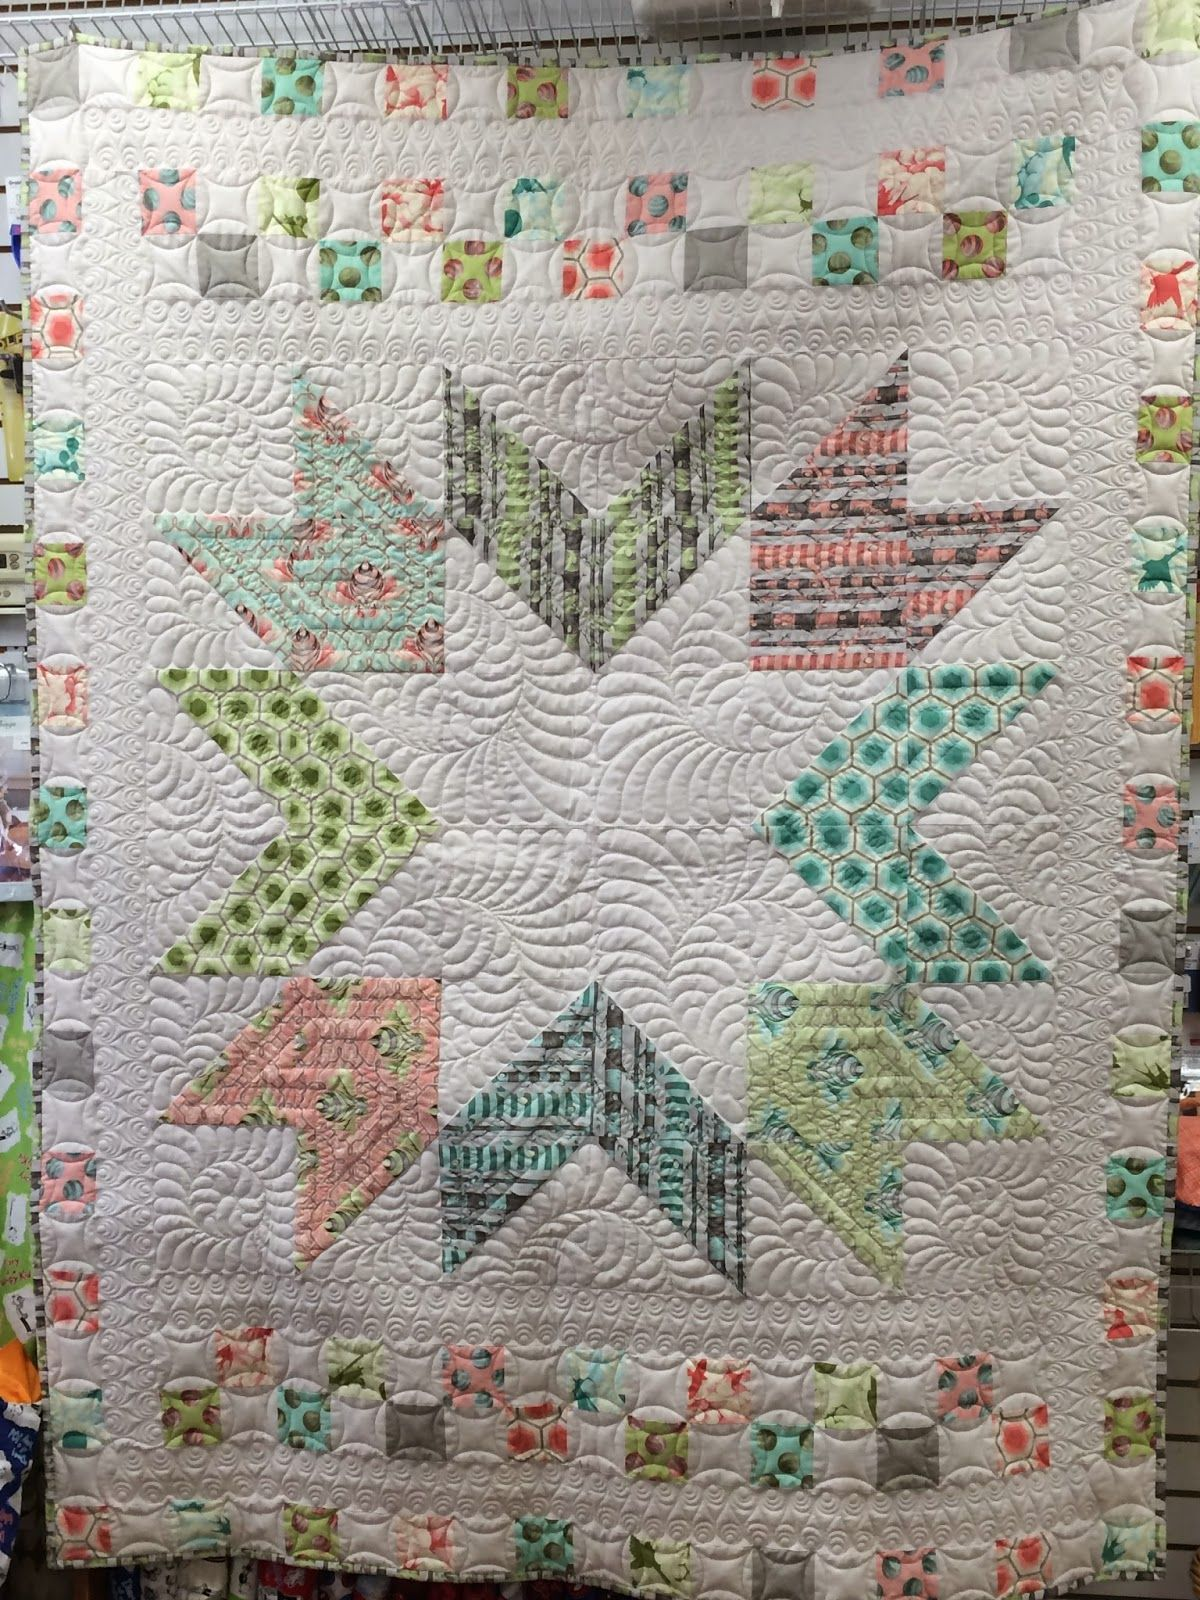 Quilting Blogs What Are Quilters Blogging About Today 9 Quilts Quilting Blogs Quilt Patterns